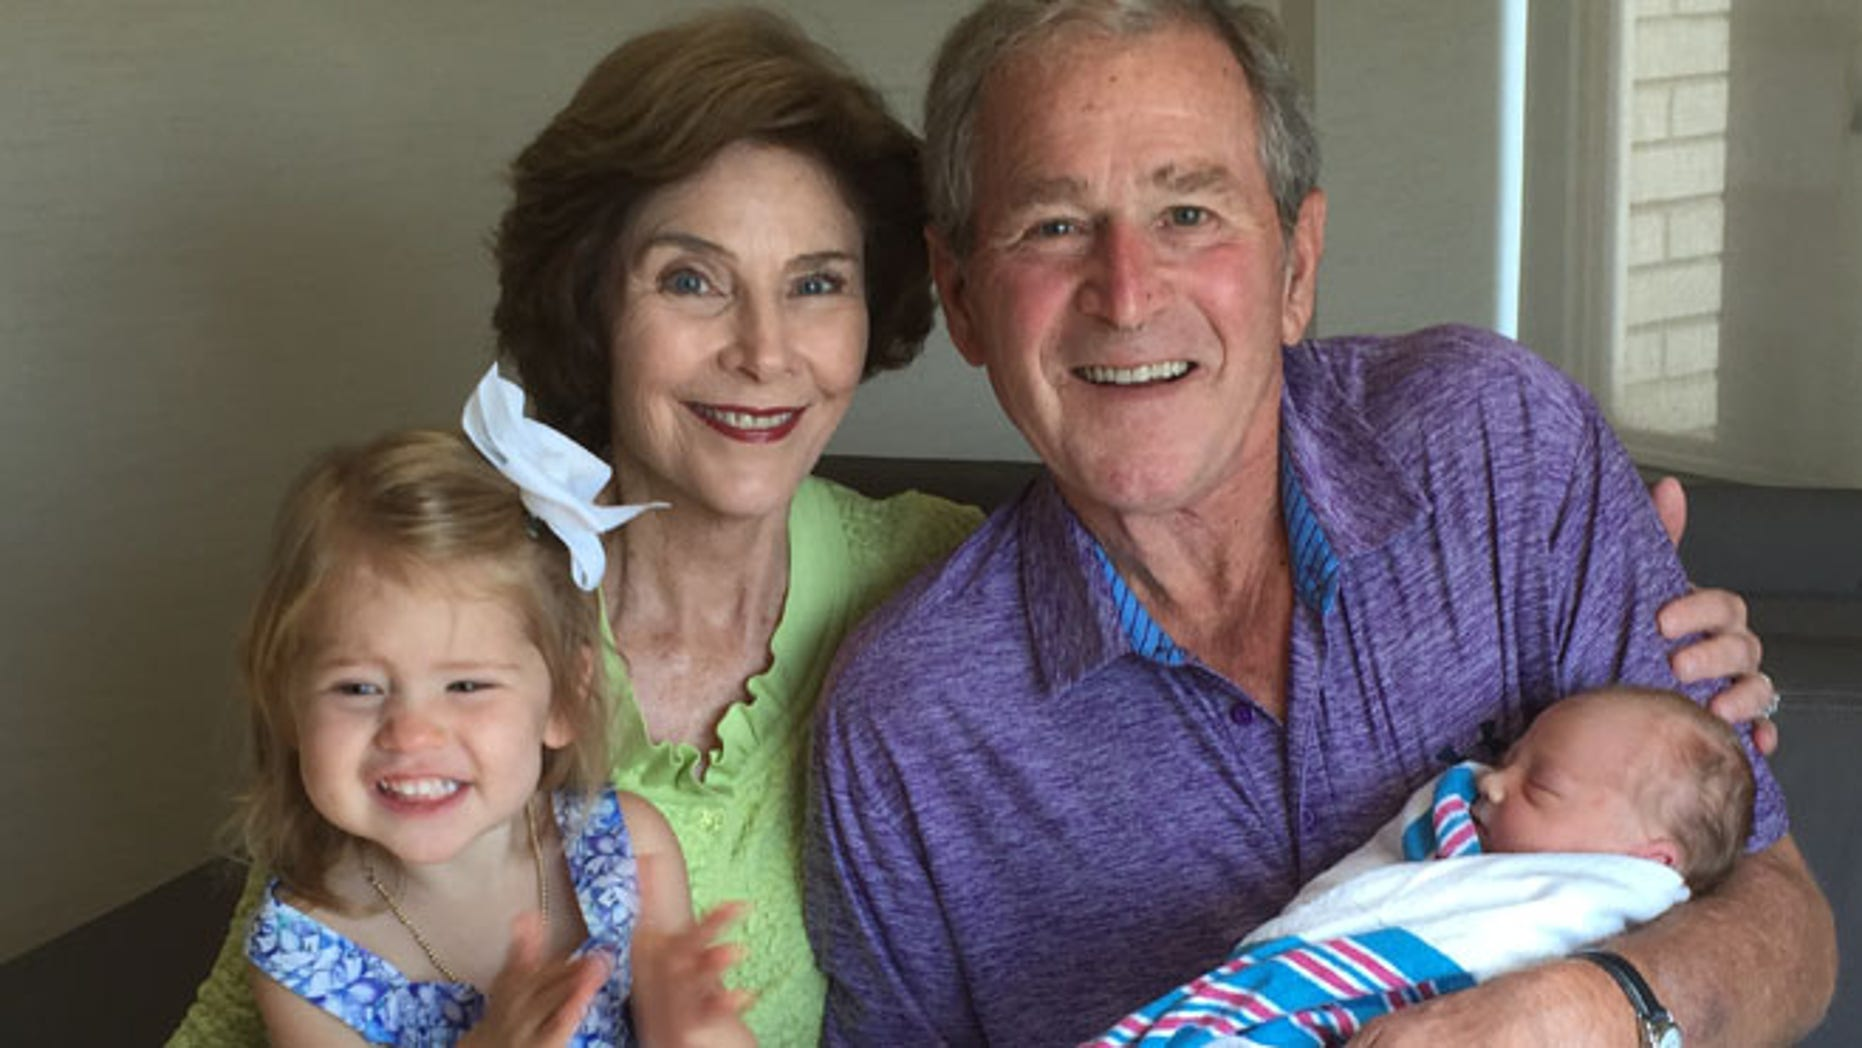 Aug 14, 2015: George W. Bush and his wife Laura hold their new granddaughter, Poppy Louise Hager. (The Bush Family)